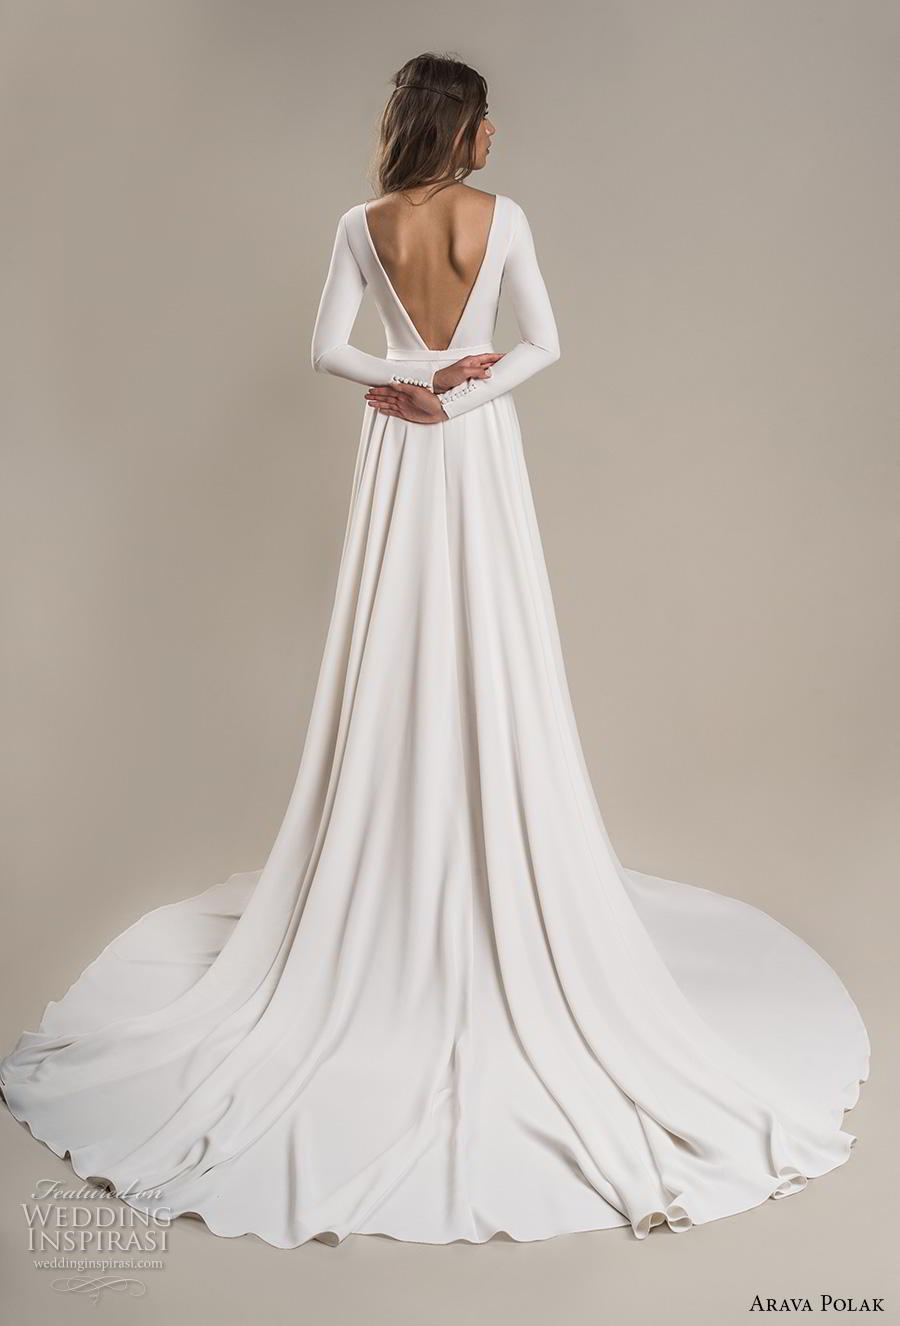 arava polak 2019 bridal long sleeves deep v neck simple minimalist slit skirt sexy modern a line wedding dress backless low v back chapel train (2) bv